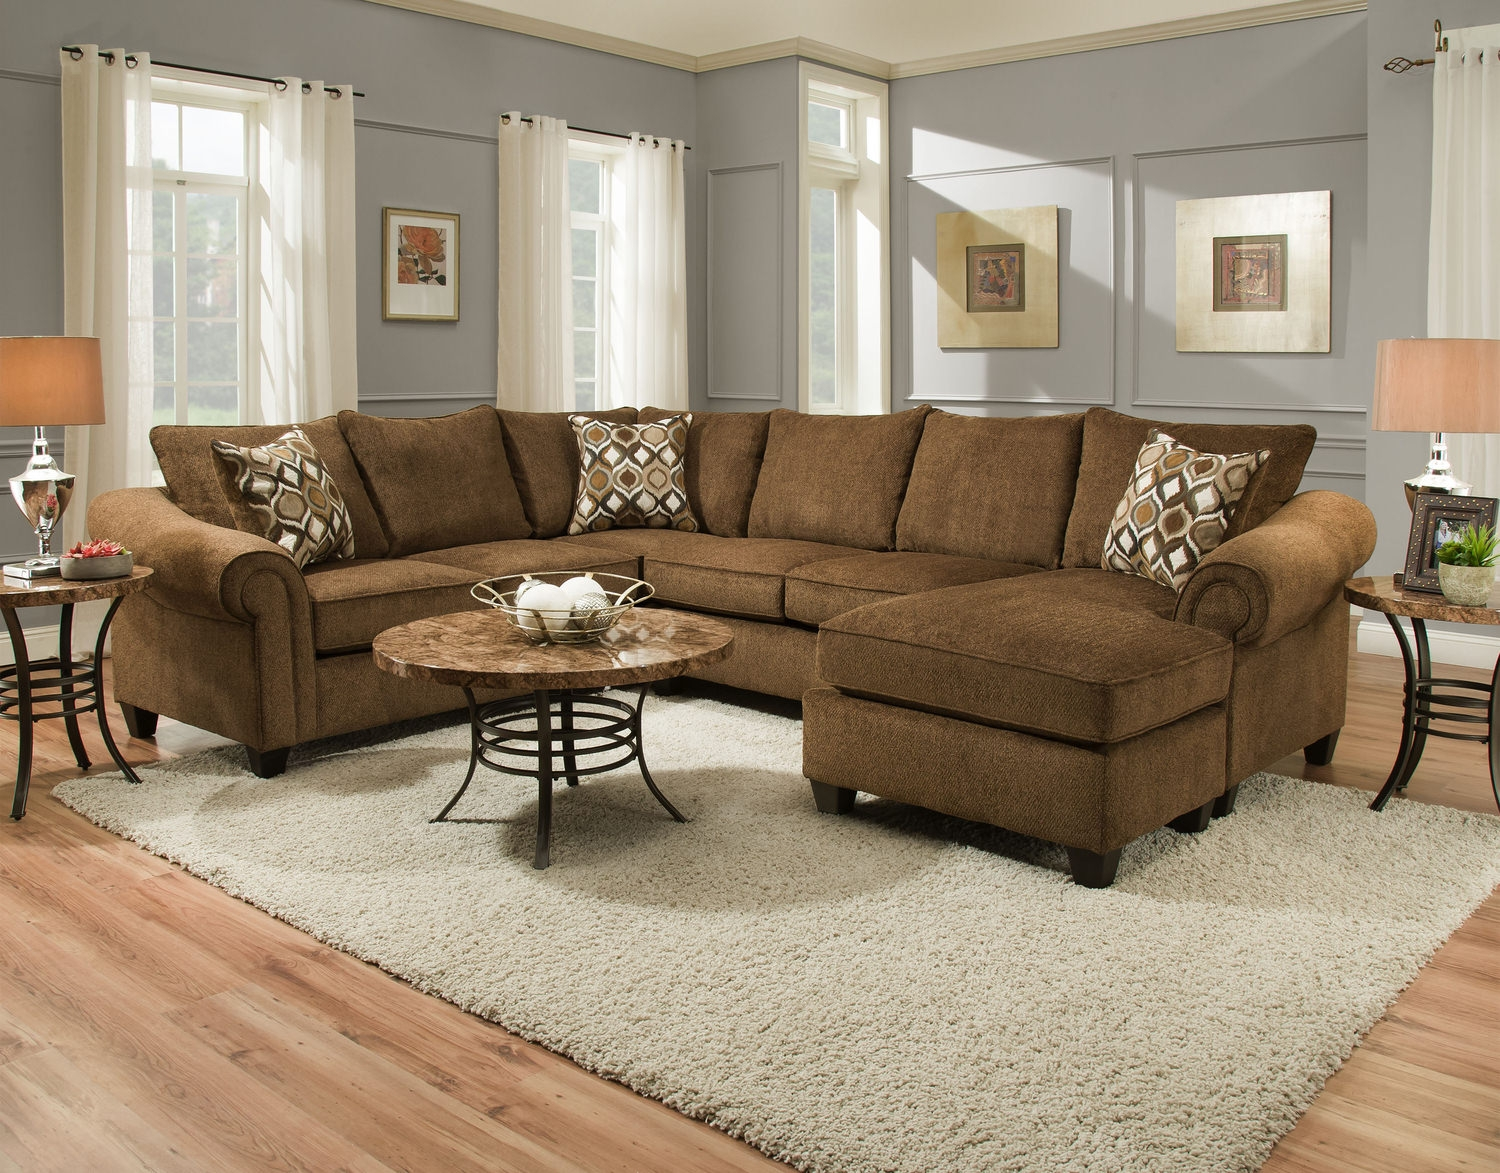 Sectional Sofas Living Room Seating Hom Furniture Inside 10 Piece Sectional Sofa (Image 11 of 15)